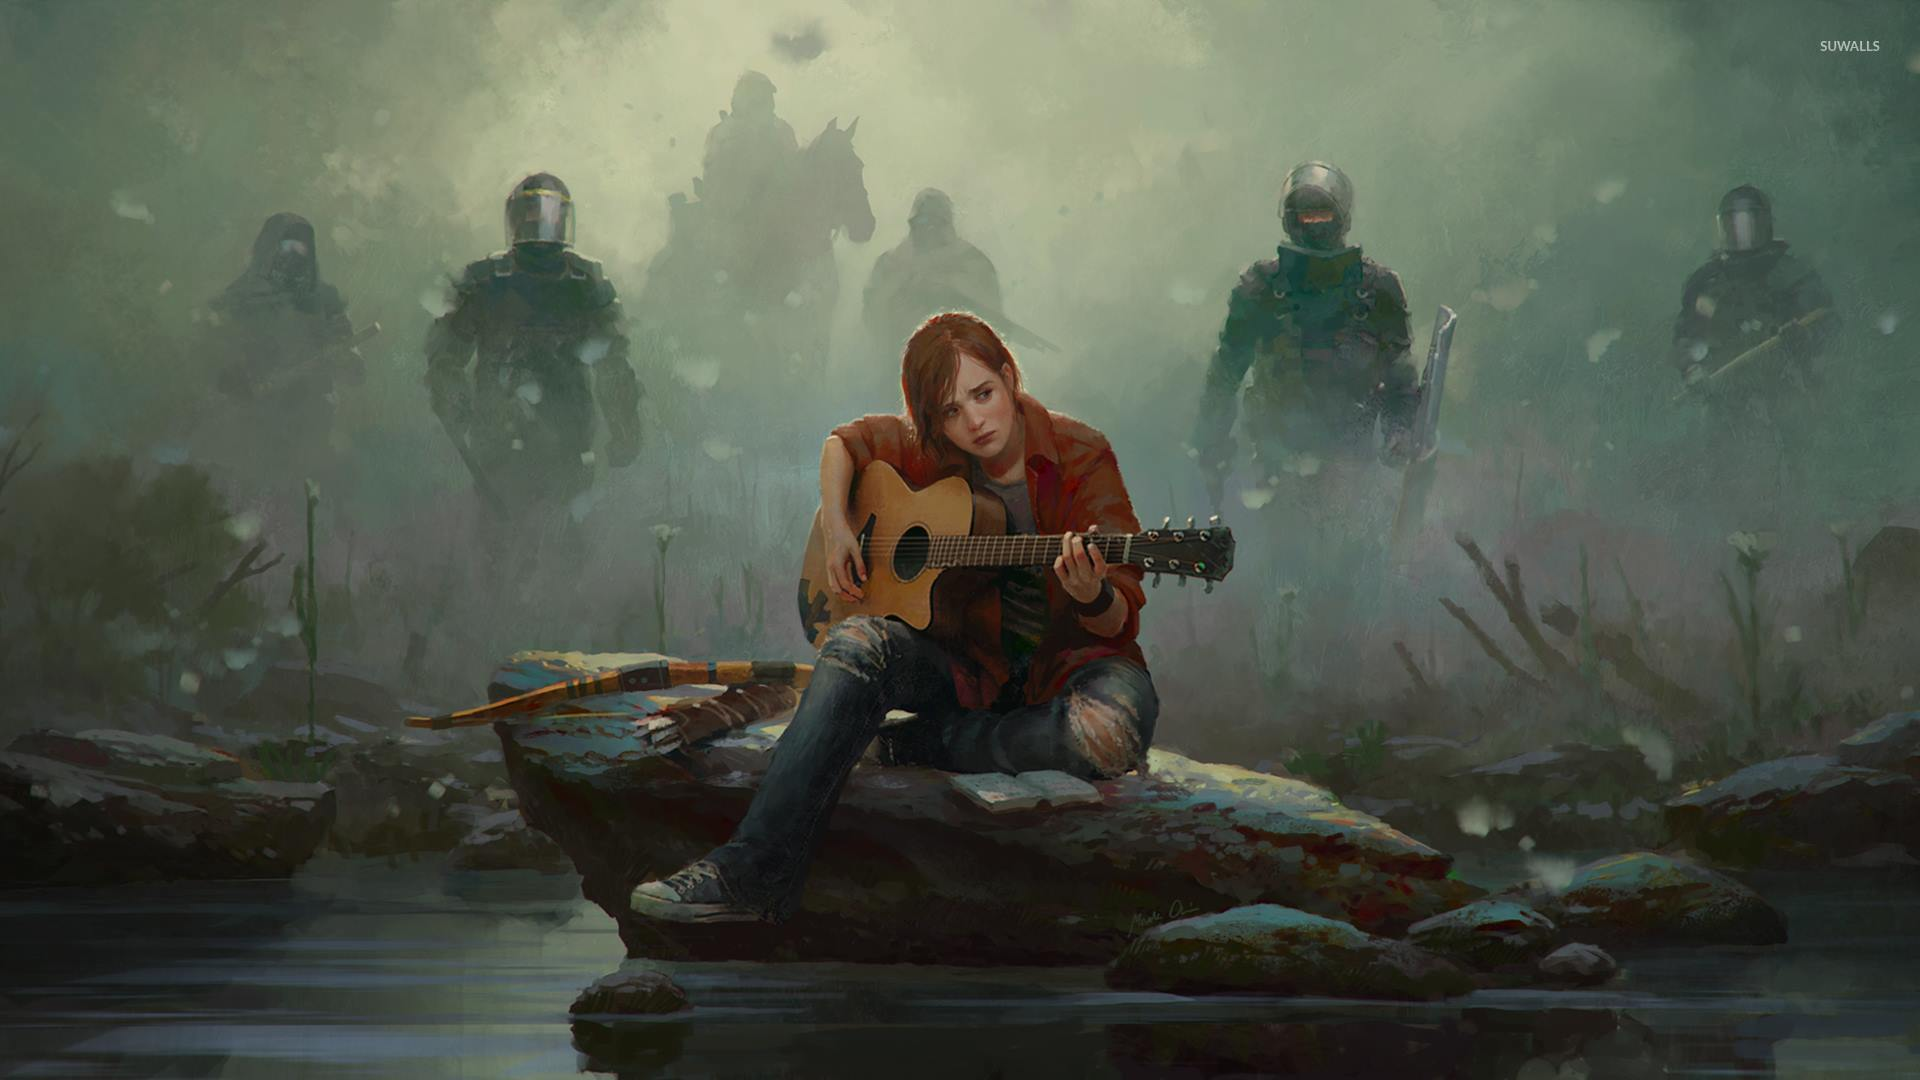 Ellie   The Last of Us wallpaper   Game wallpapers   30626 1680x1050